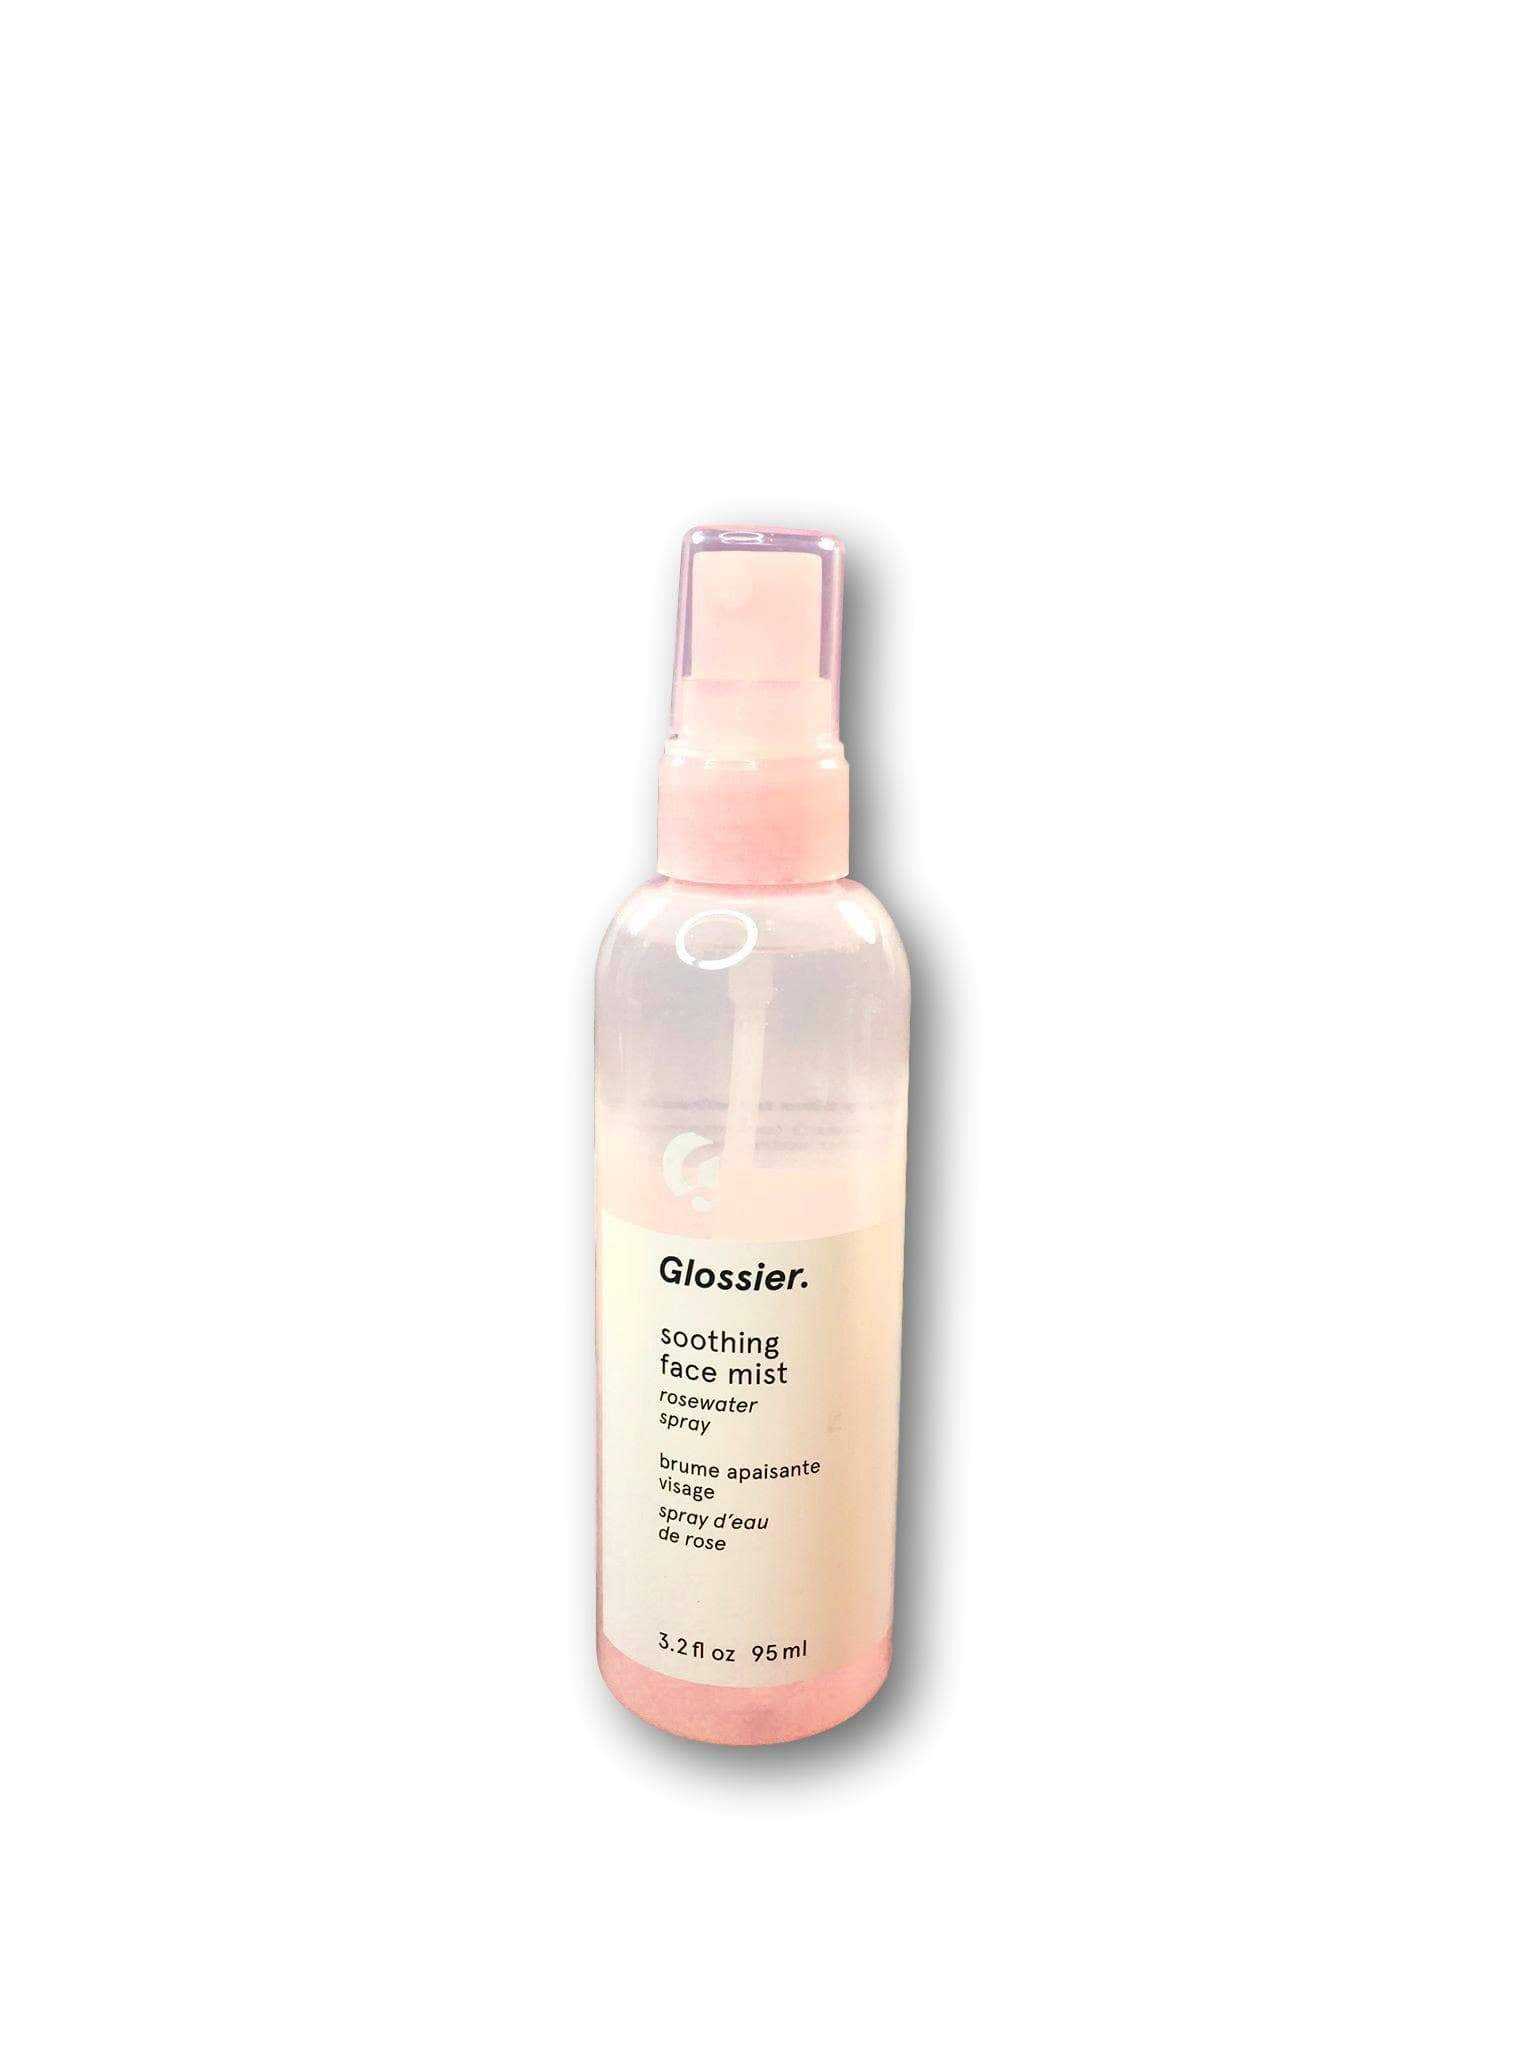 Glossier Setting Spray Glossier Smoothing Face Mist,  3.2 fl oz | 95 ml